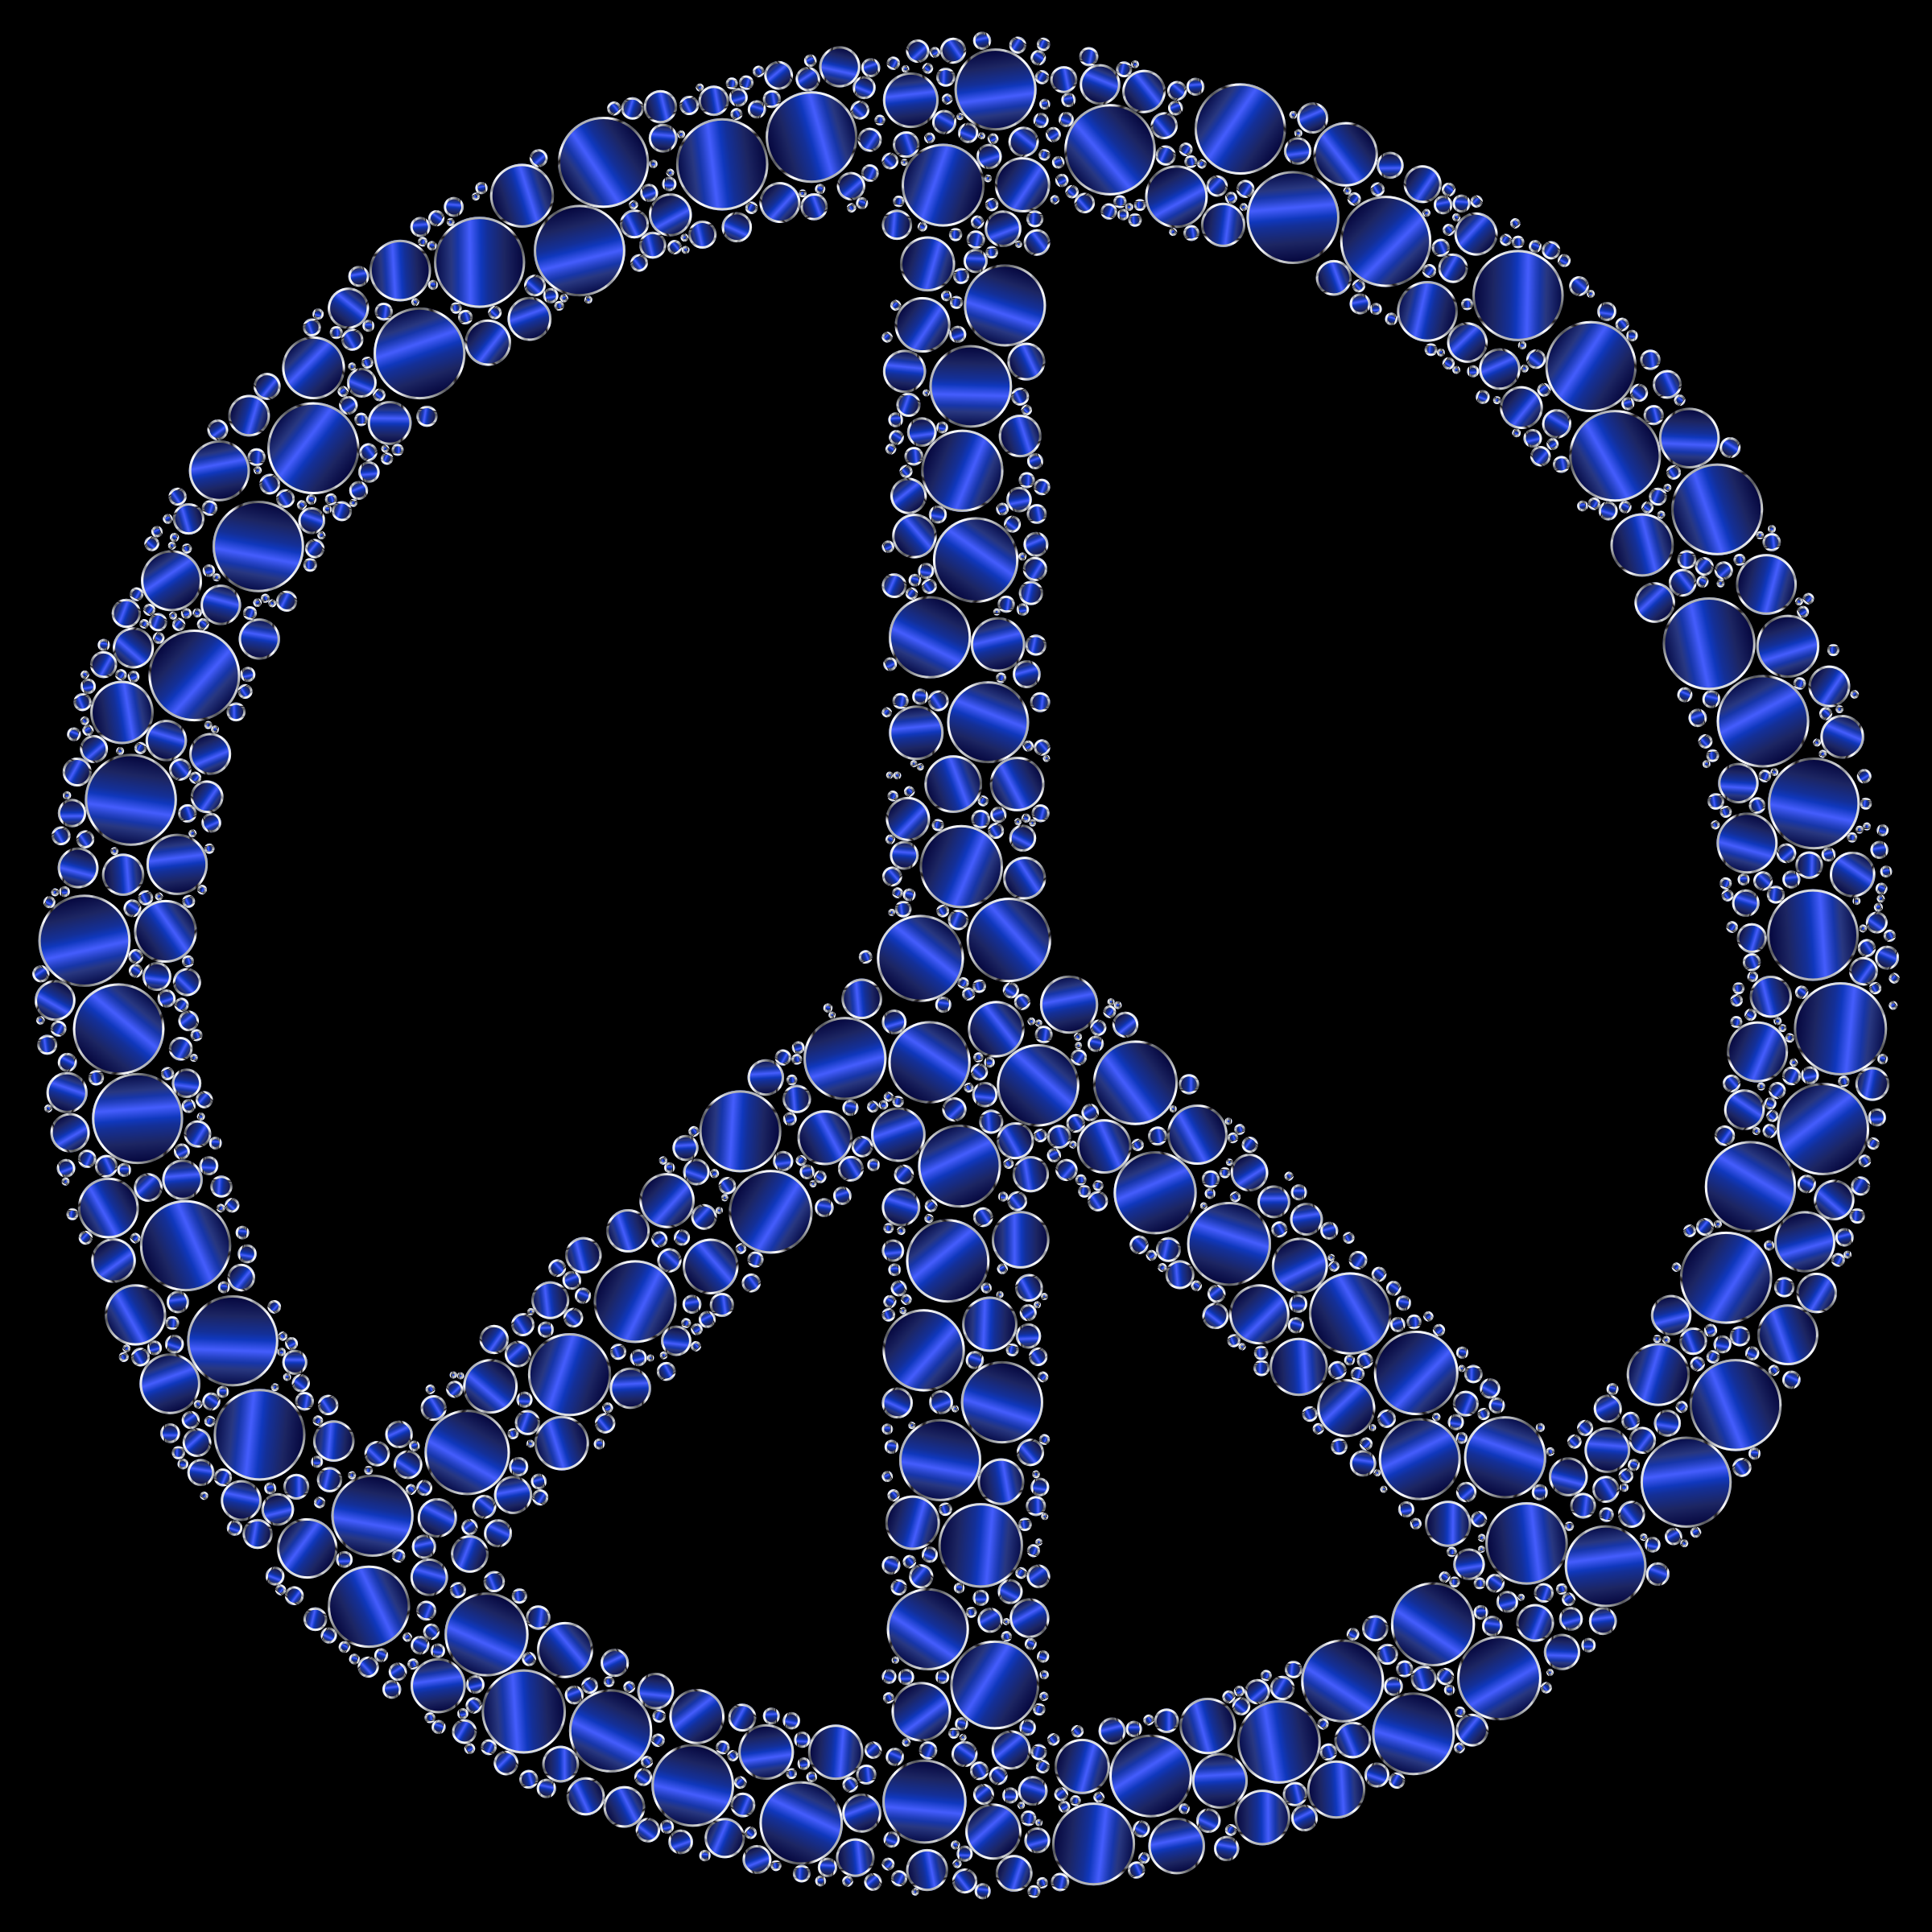 Colorful Circles Peace Sign 21 by GDJ